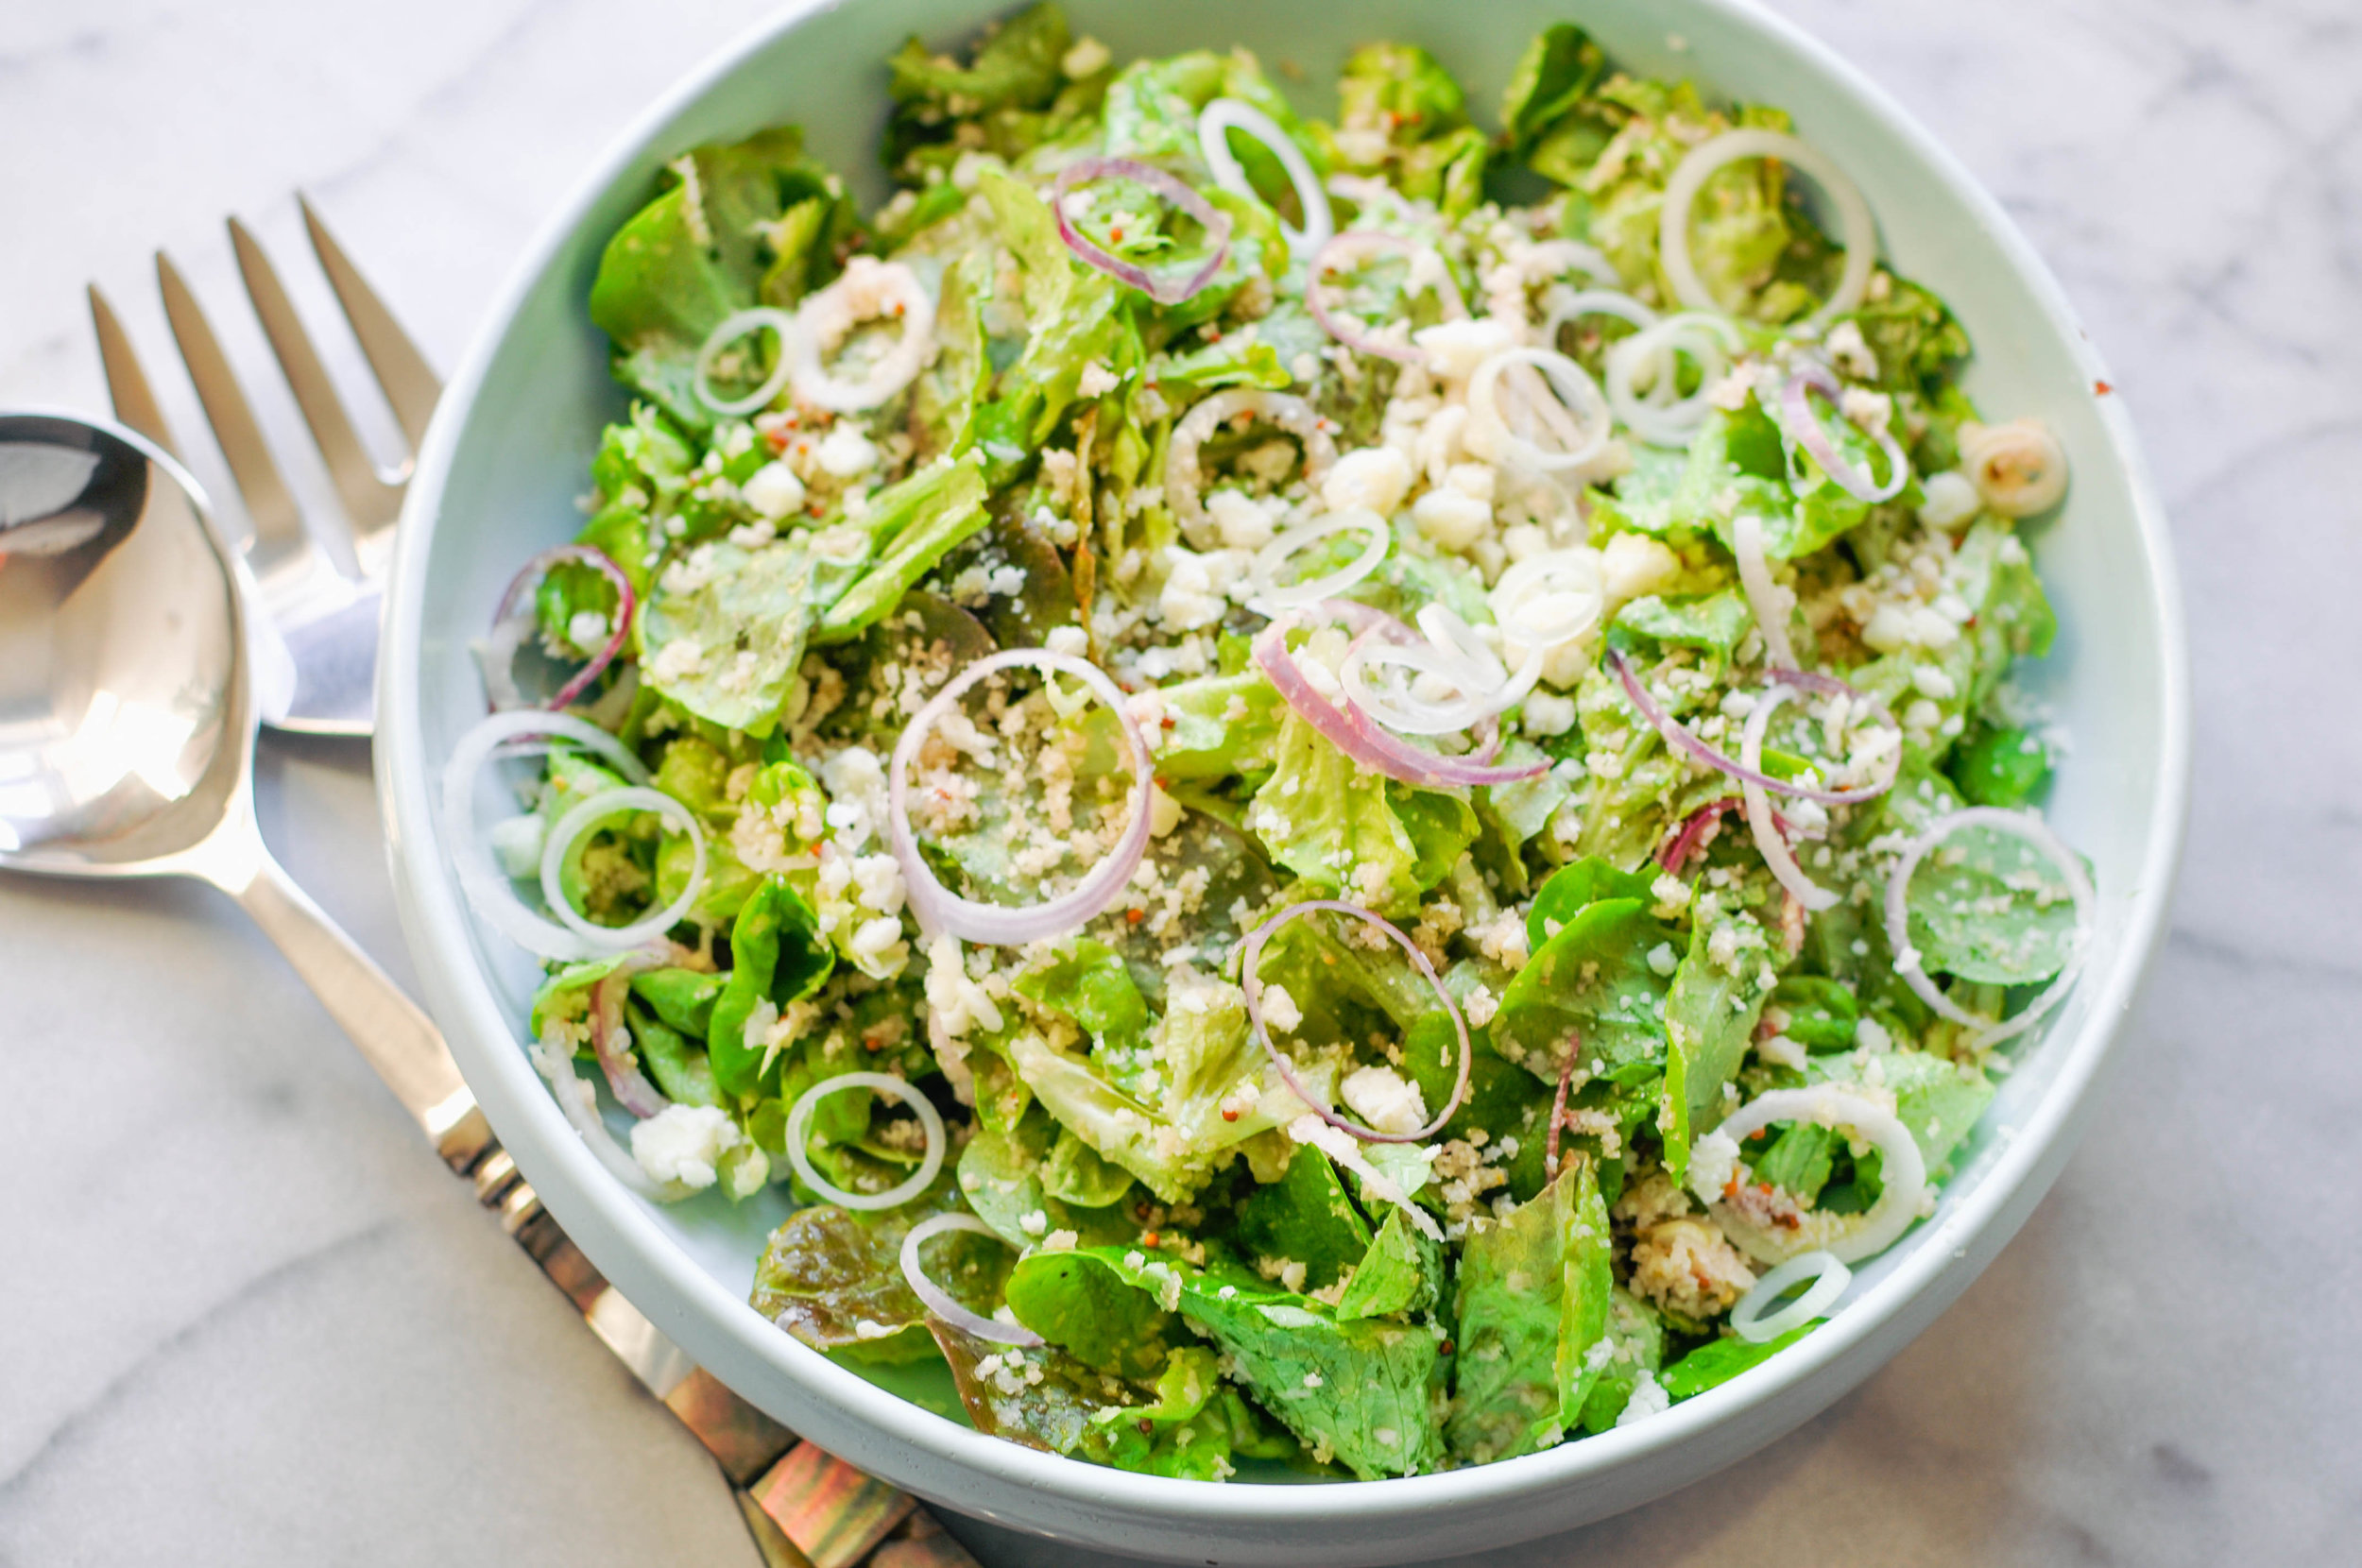 My Favorite Green Salad Recipe. A beautiful salad with butter lettuce, breadcrumbs, red spring onions, pecorino, and a red wine mustard dressing. | This Healthy Table